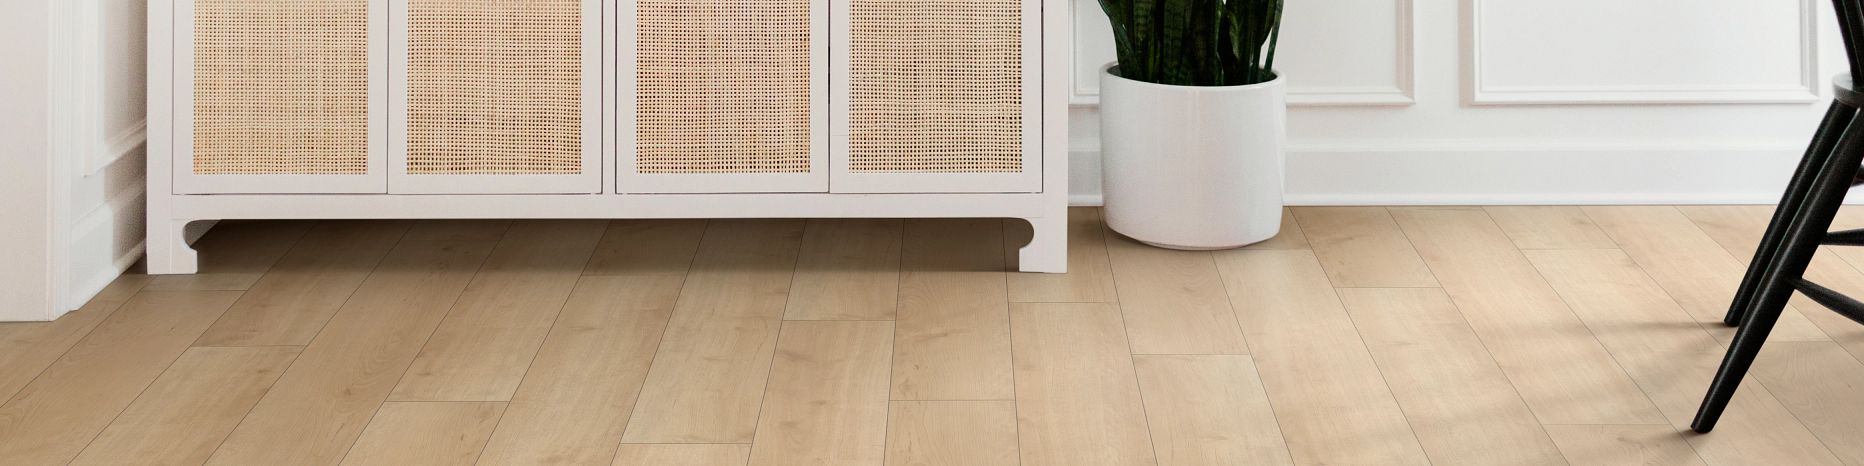 Laminate-Intrigue-02022-Soft-Maple-Foyer-Furniture-2021